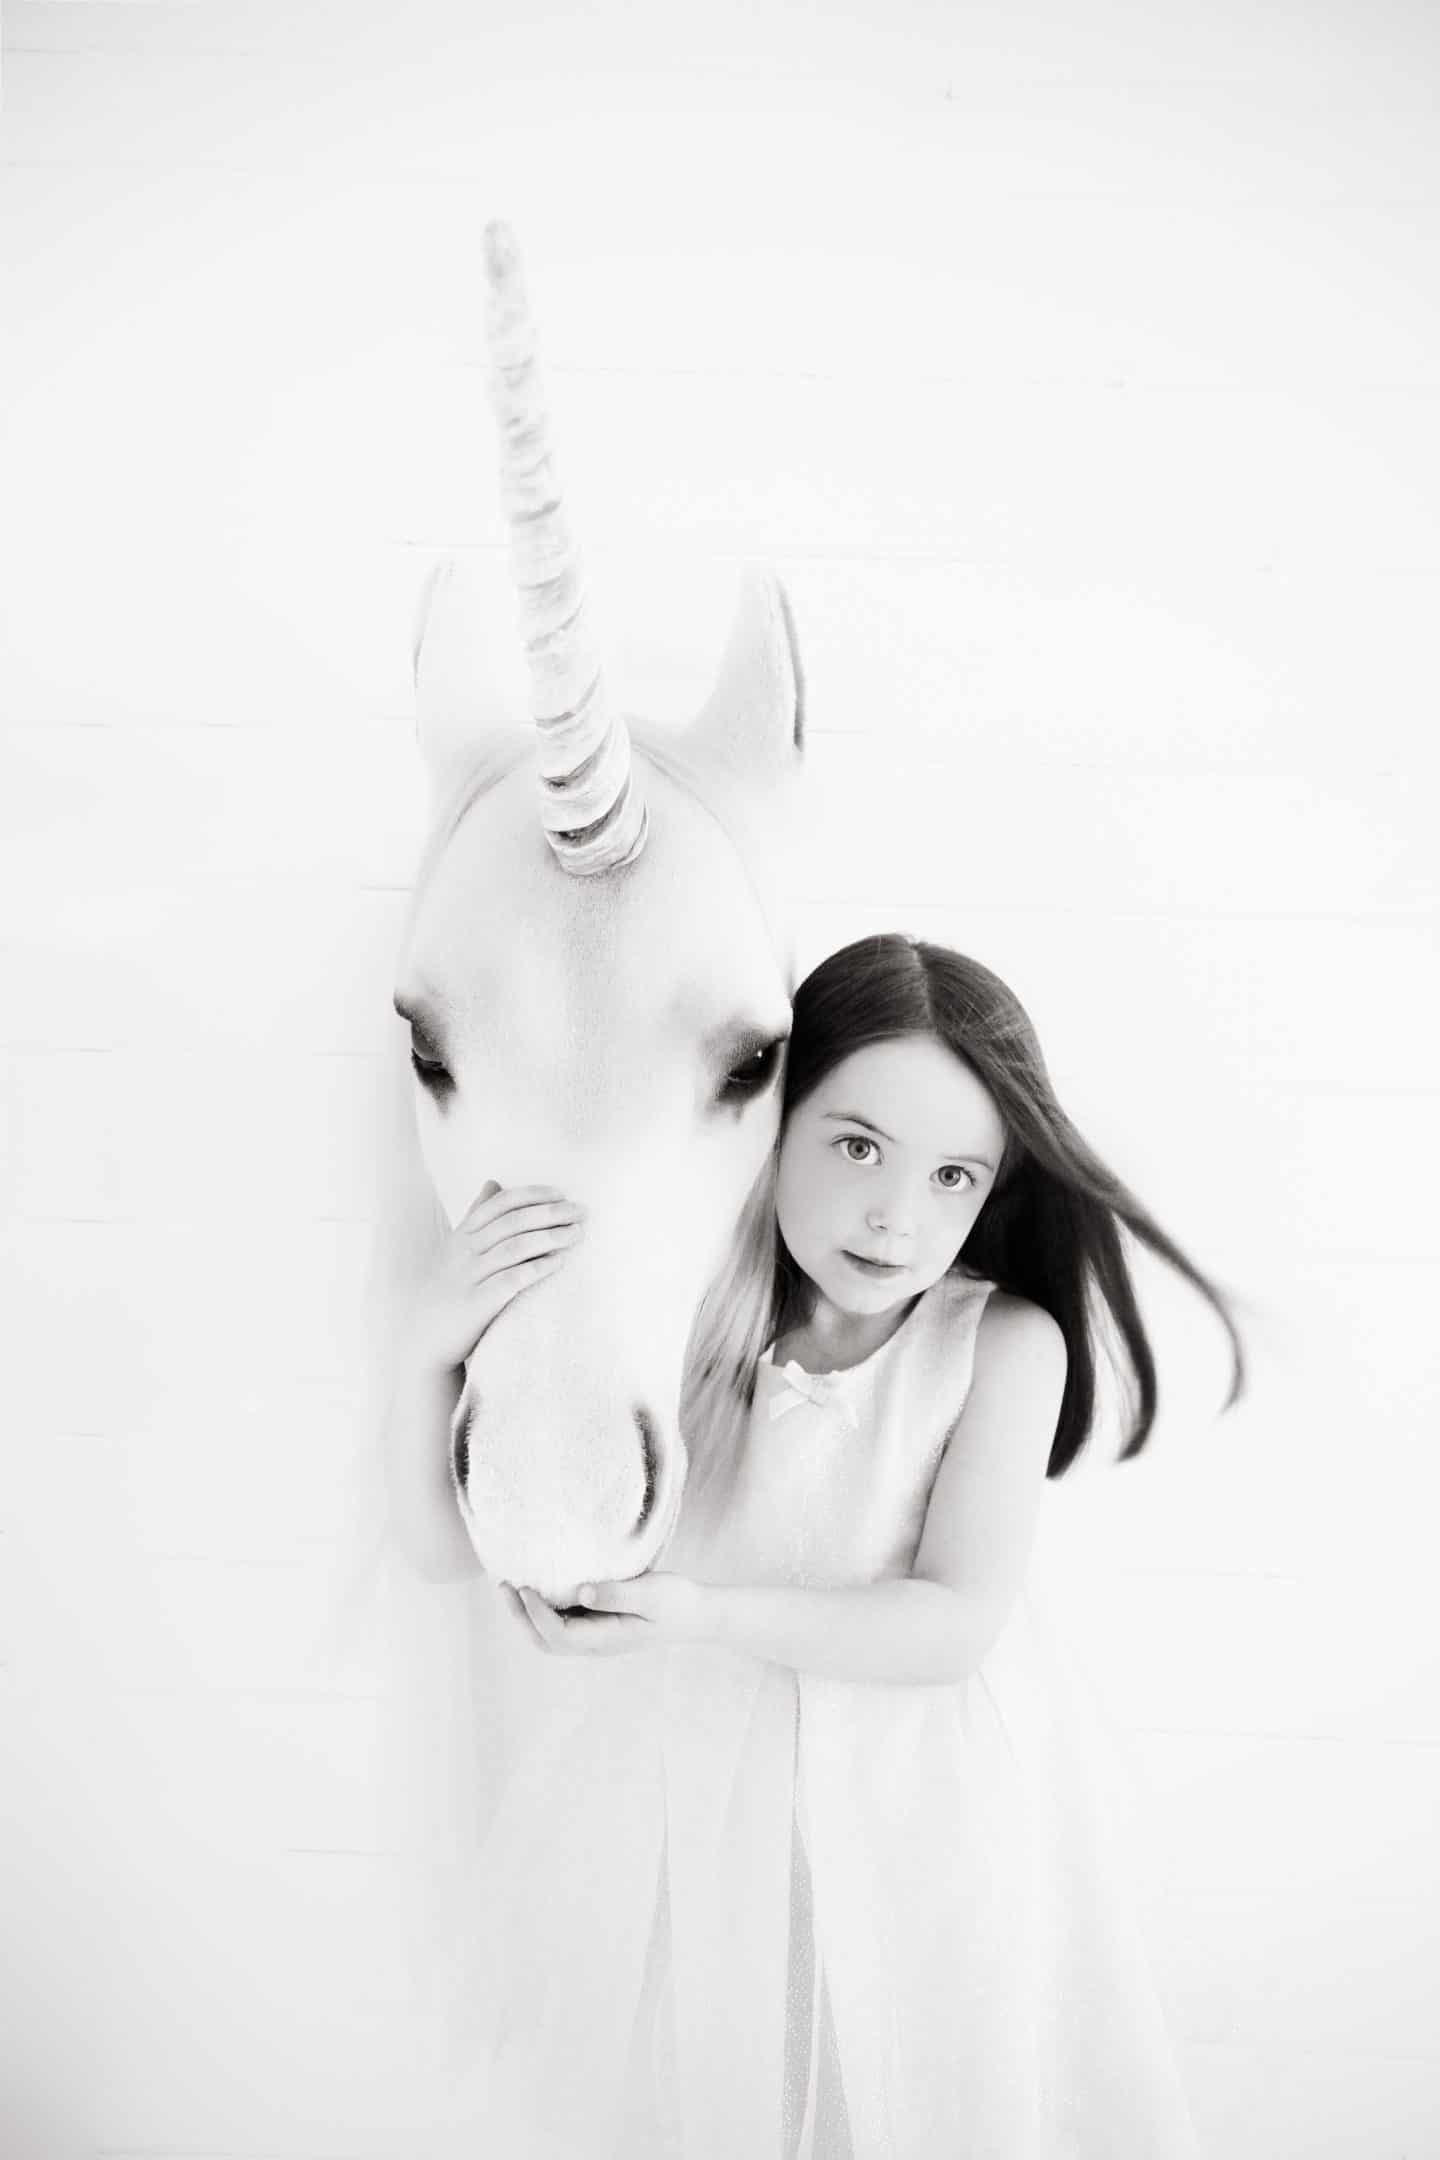 Thea and a unicorn photographed by Shaneen Rosewarne Cox